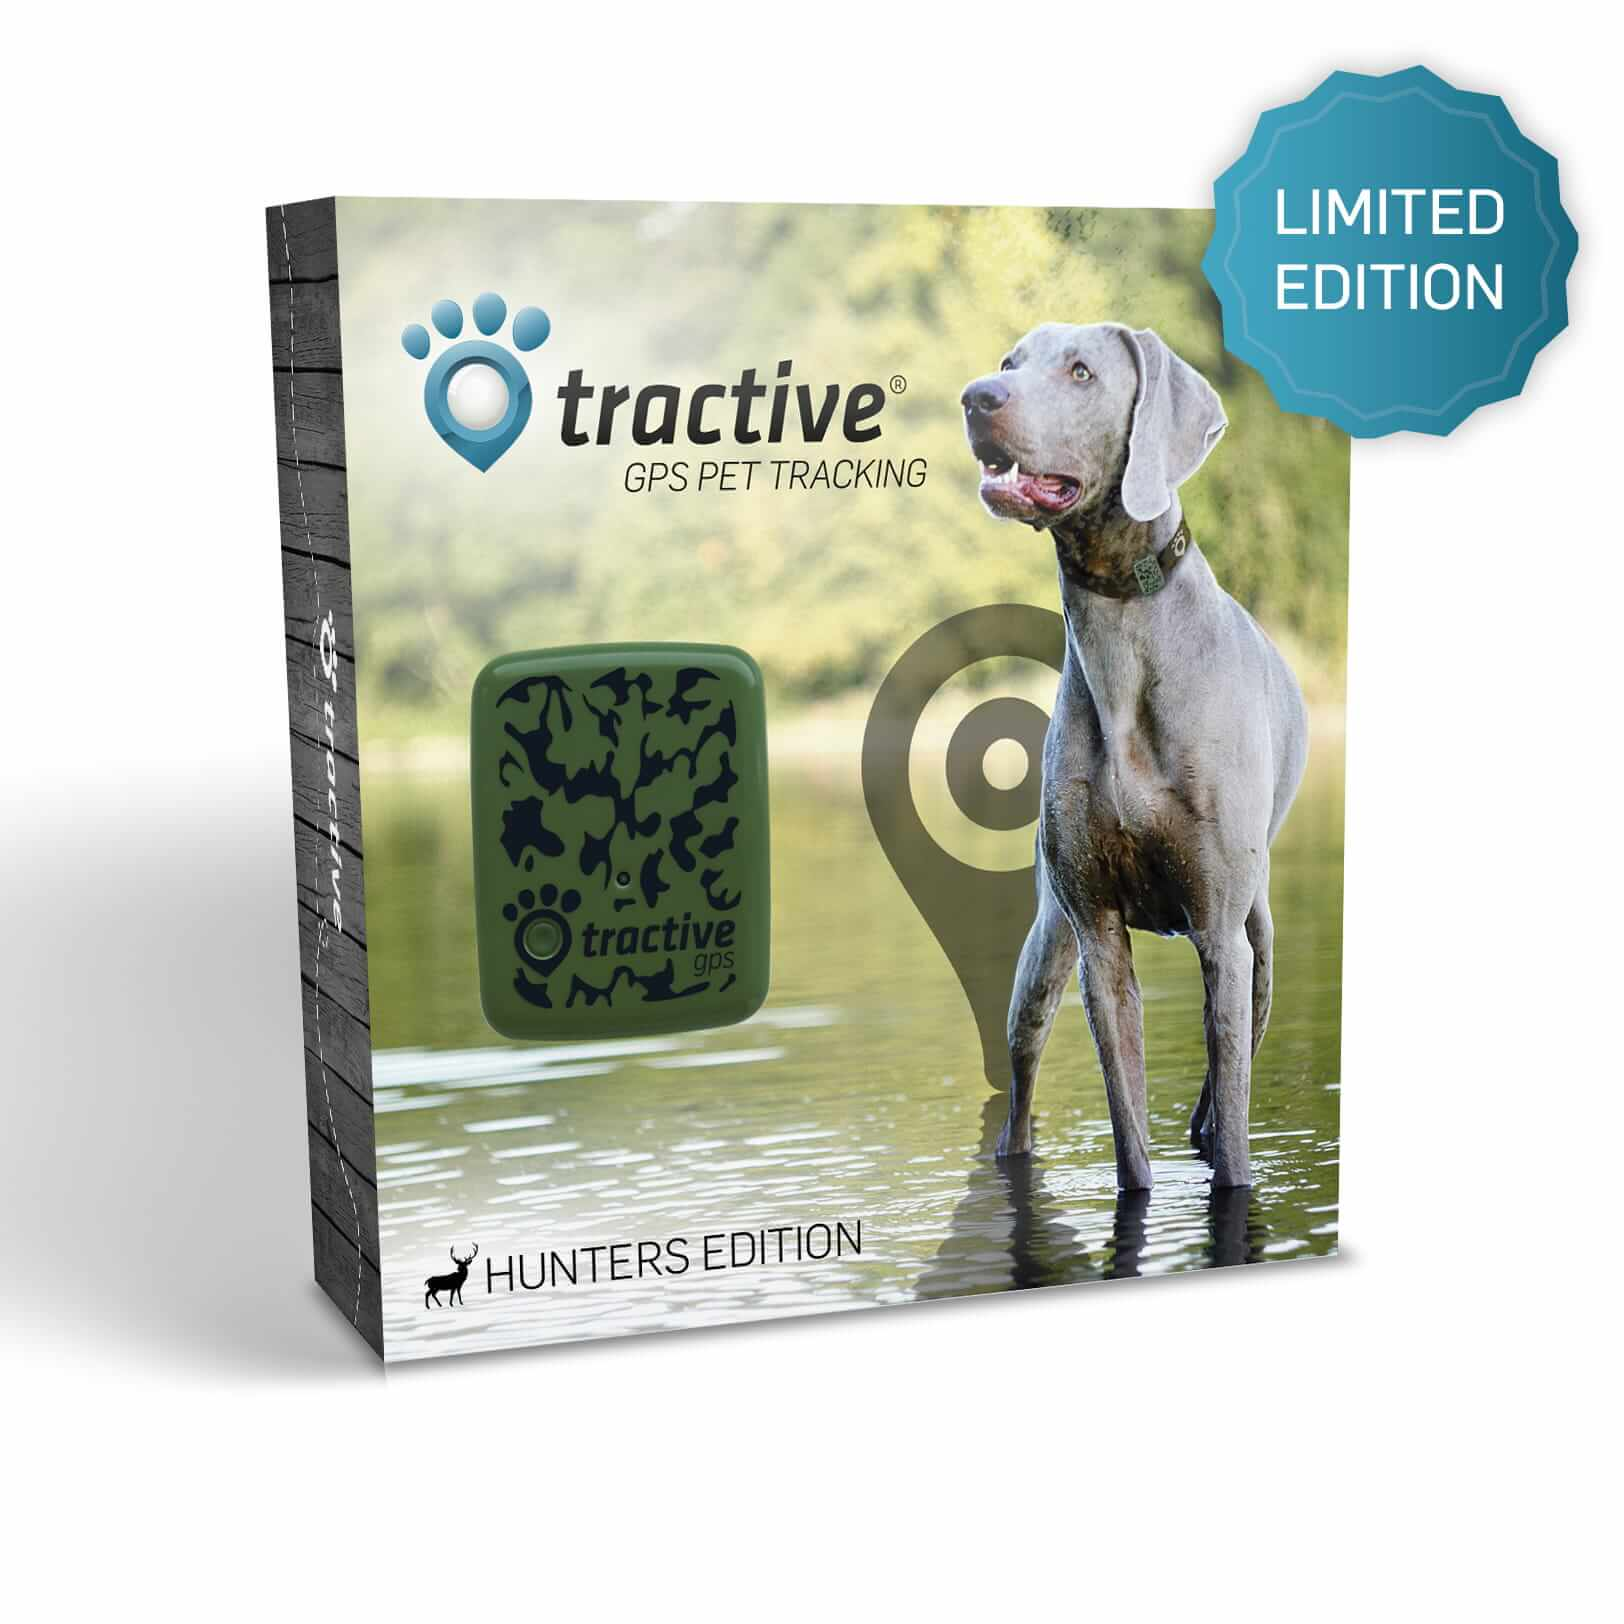 tractive gps hunters edition